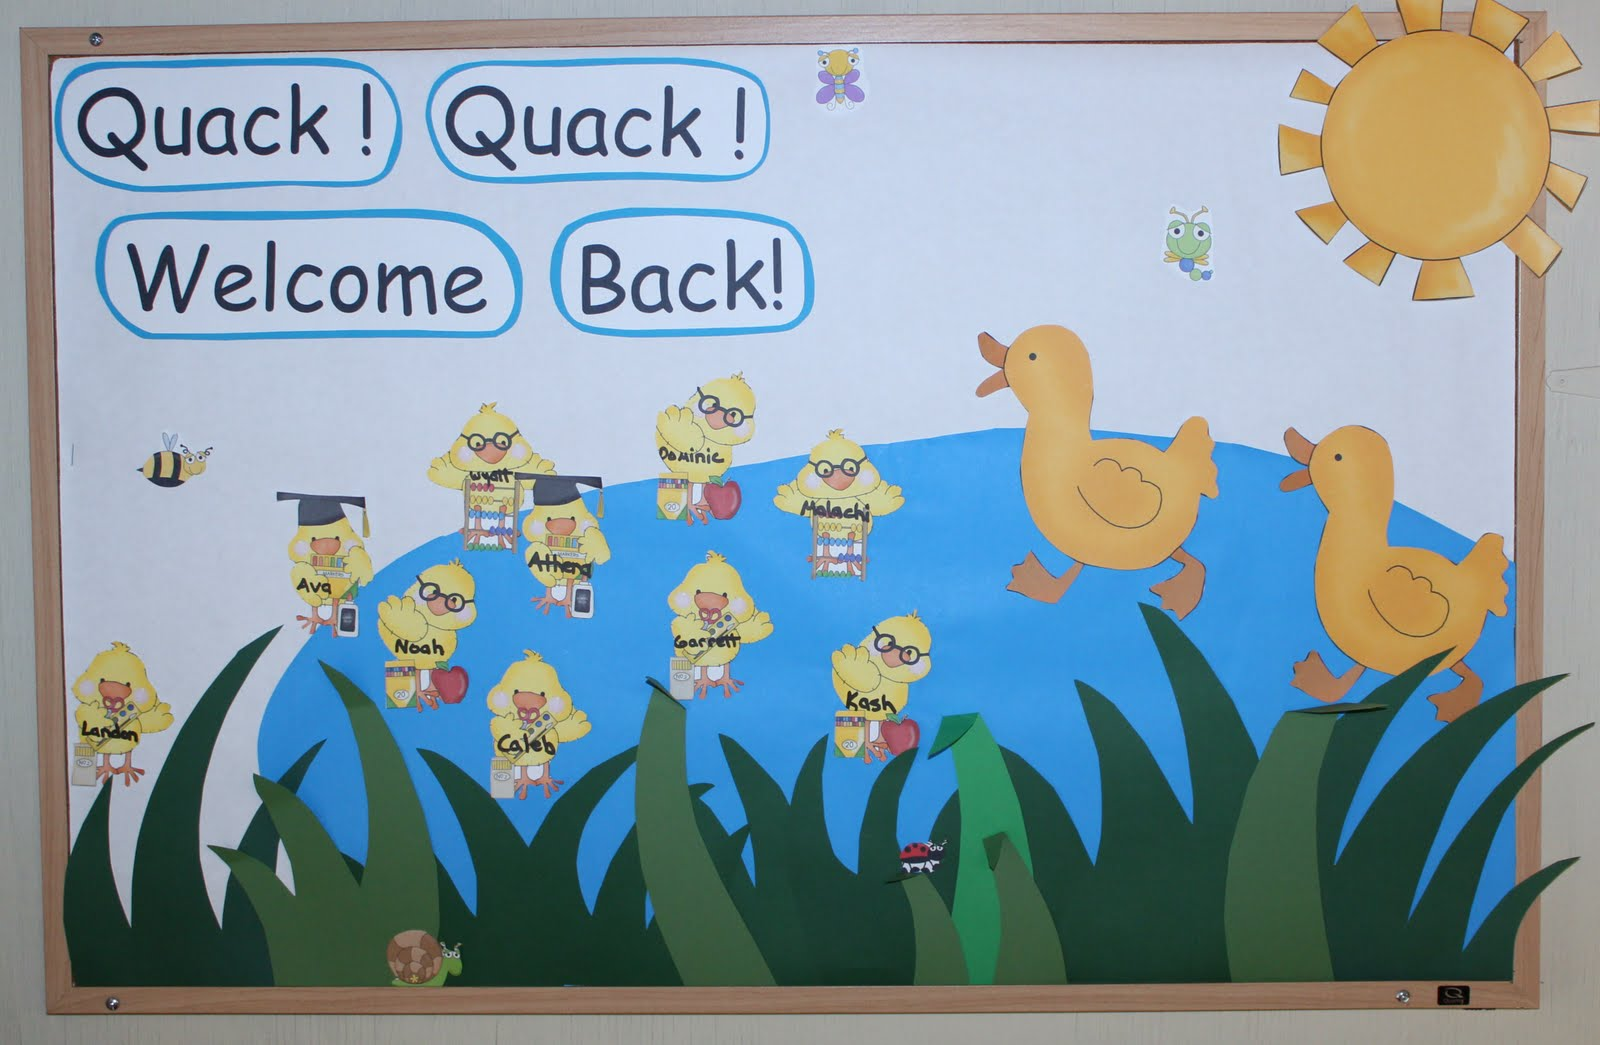 September Bulletin Board Ideas http://123learnonline.blogspot.com/2011/08/september-bulletin-board-idea.html